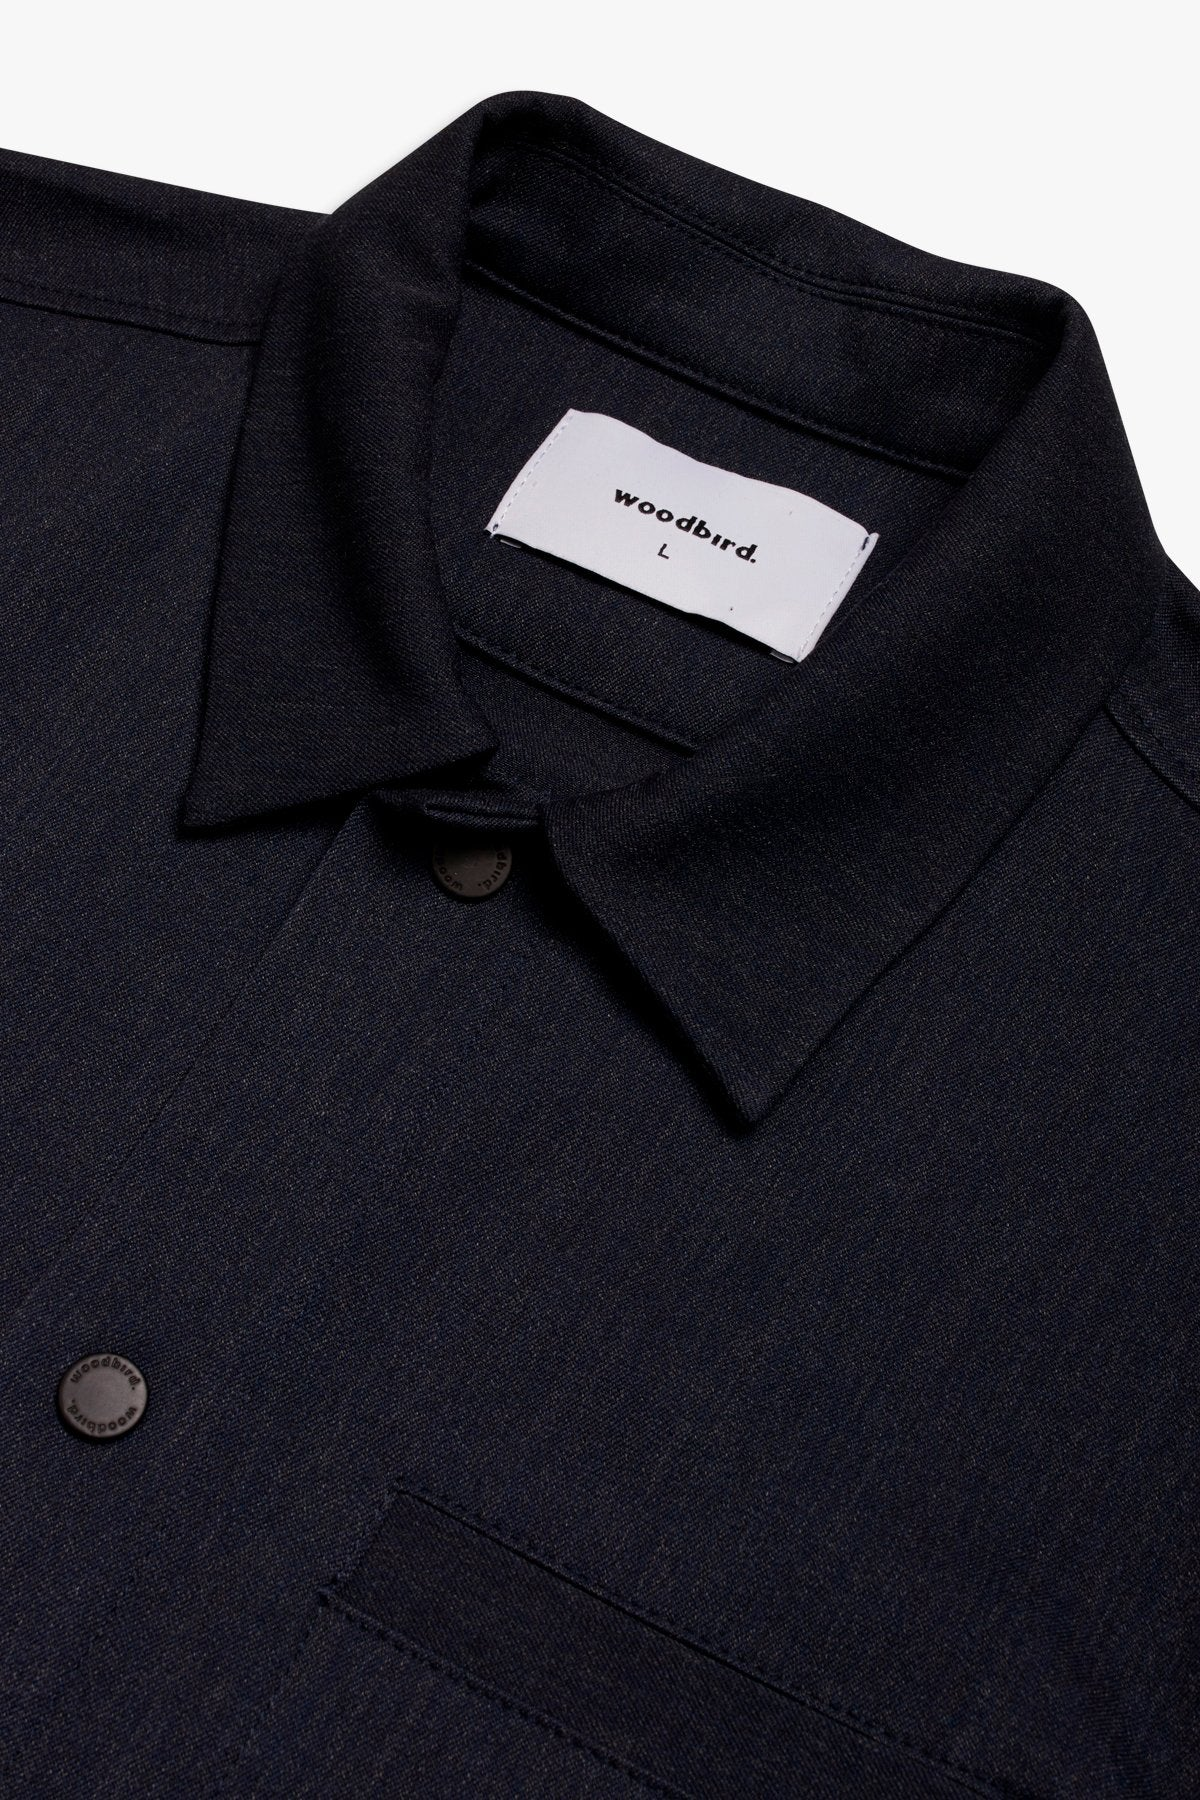 Woodbird  Brenti Shirt / men